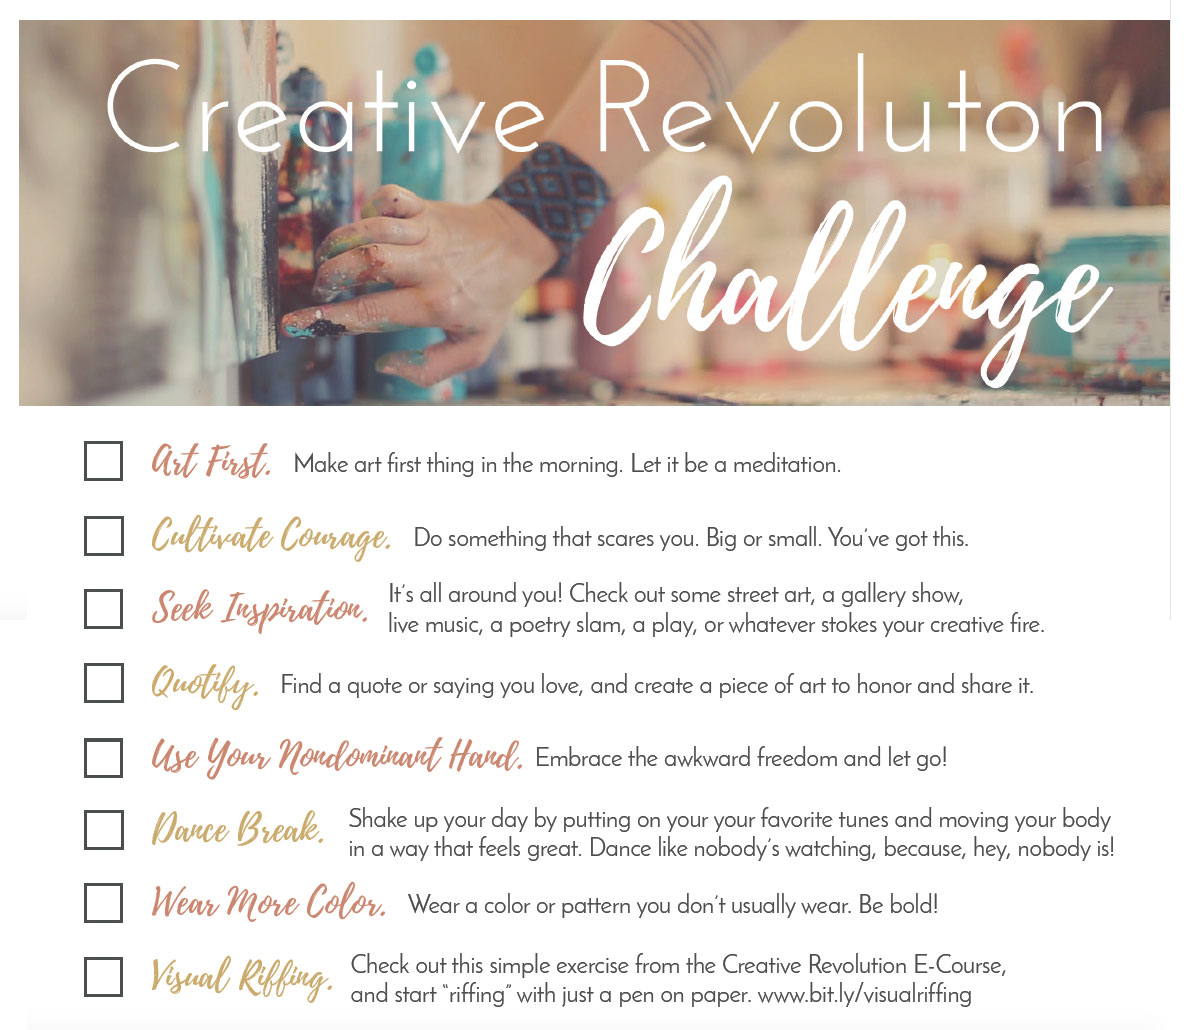 I'm doing Flora Bowley's Creative Revolution Challenge in Sept. #creativerevolutionchallenge